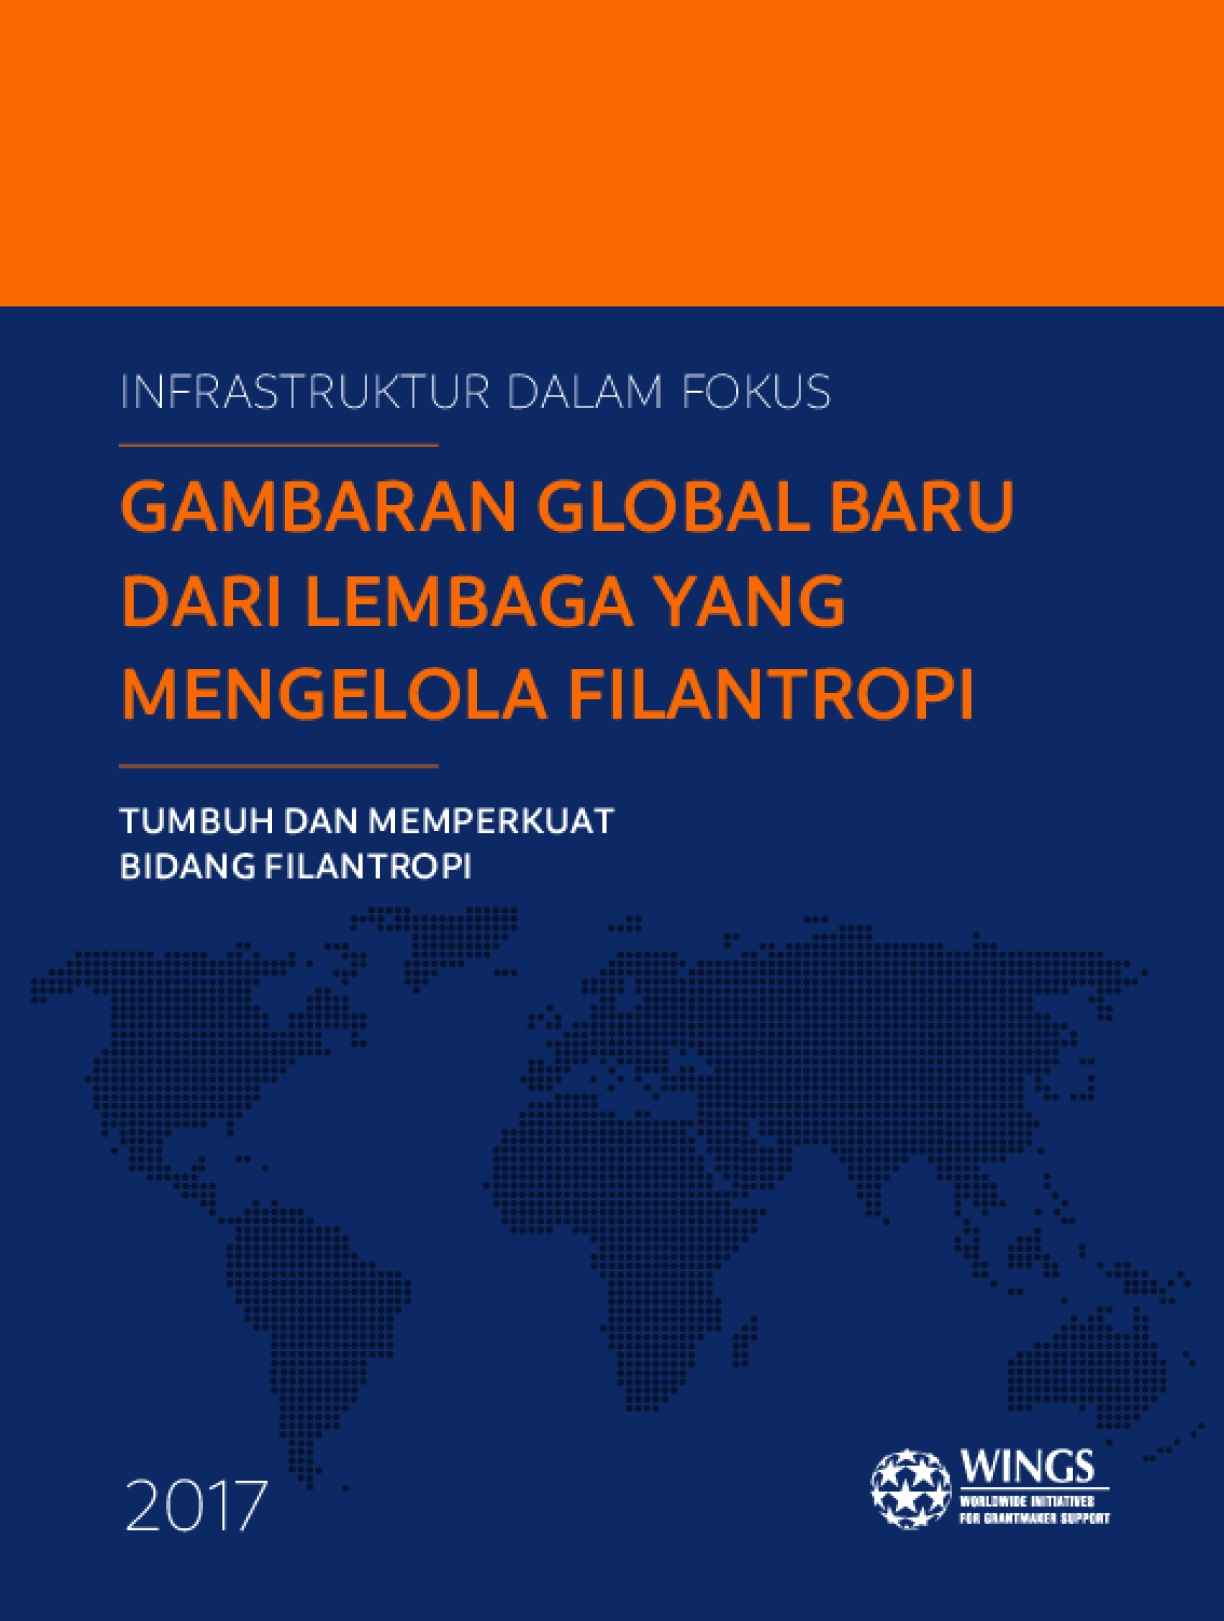 Infrastructure in Focus: A New Global Picture of Organizations Serving Philanthropy - Indonesian Version